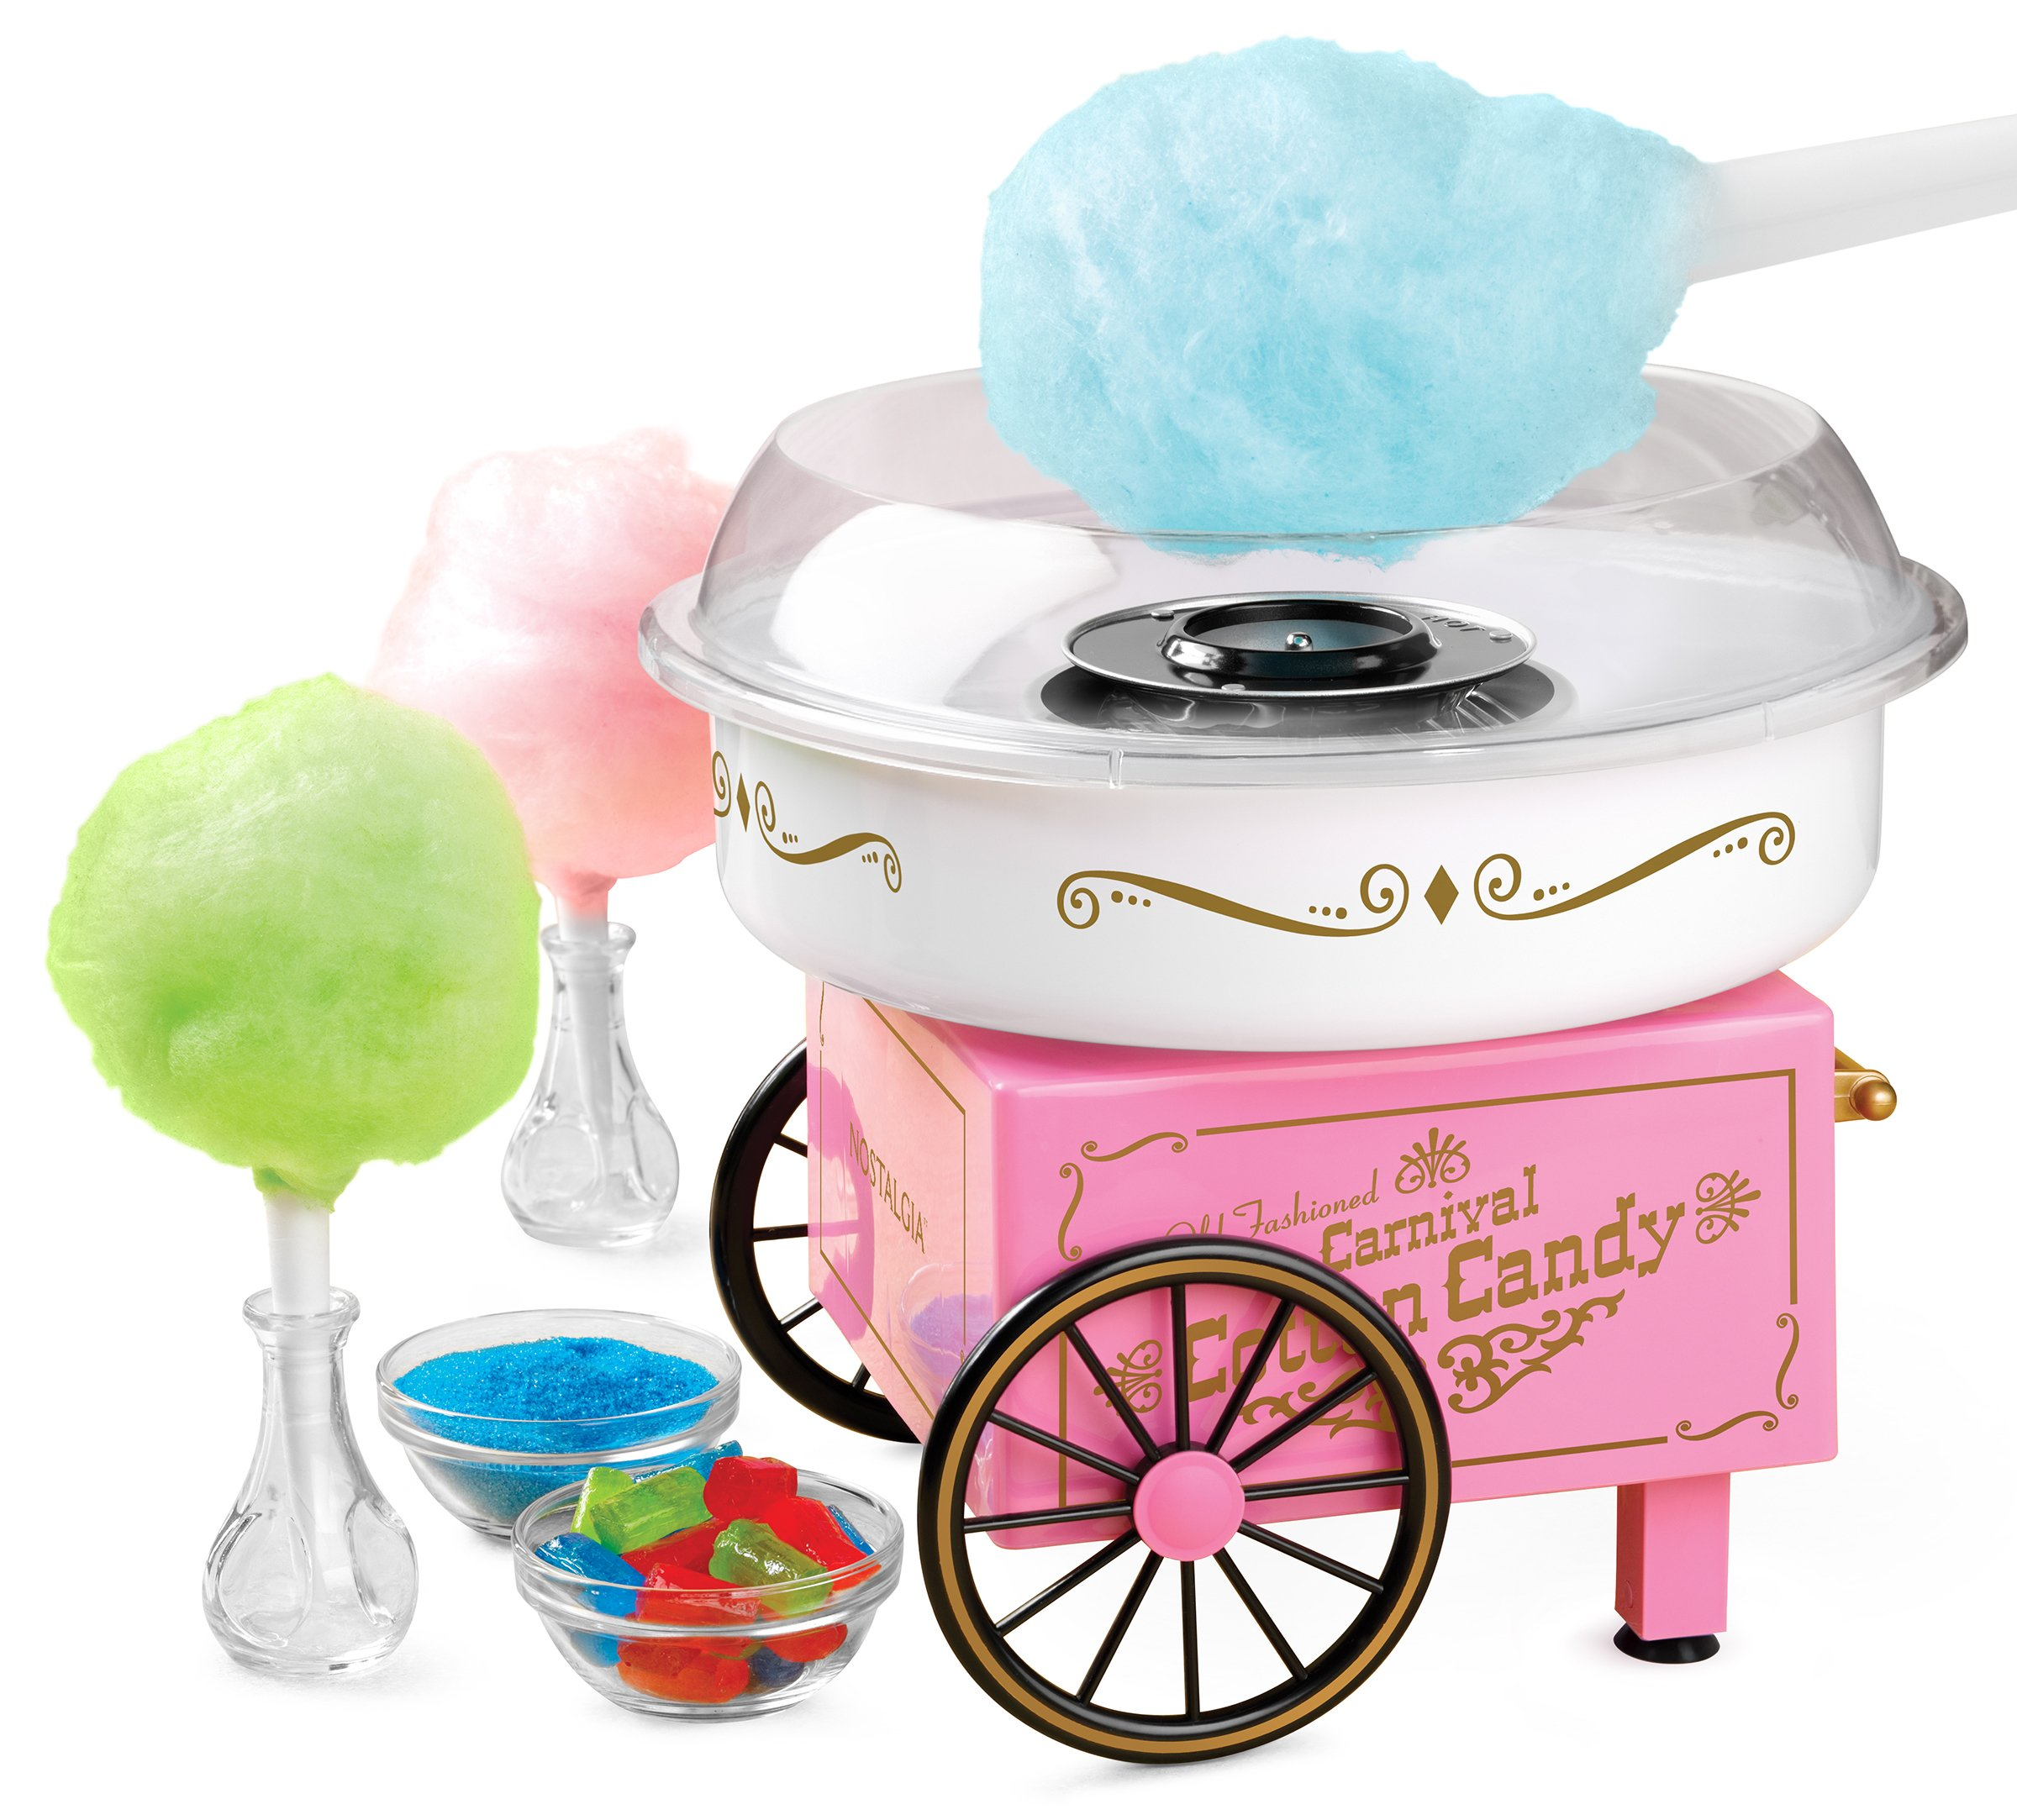 Nostalgia PCM305 Vintage Hard & Sugar-Free Candy Cotton Candy Maker by Nostalgia (Image #2)